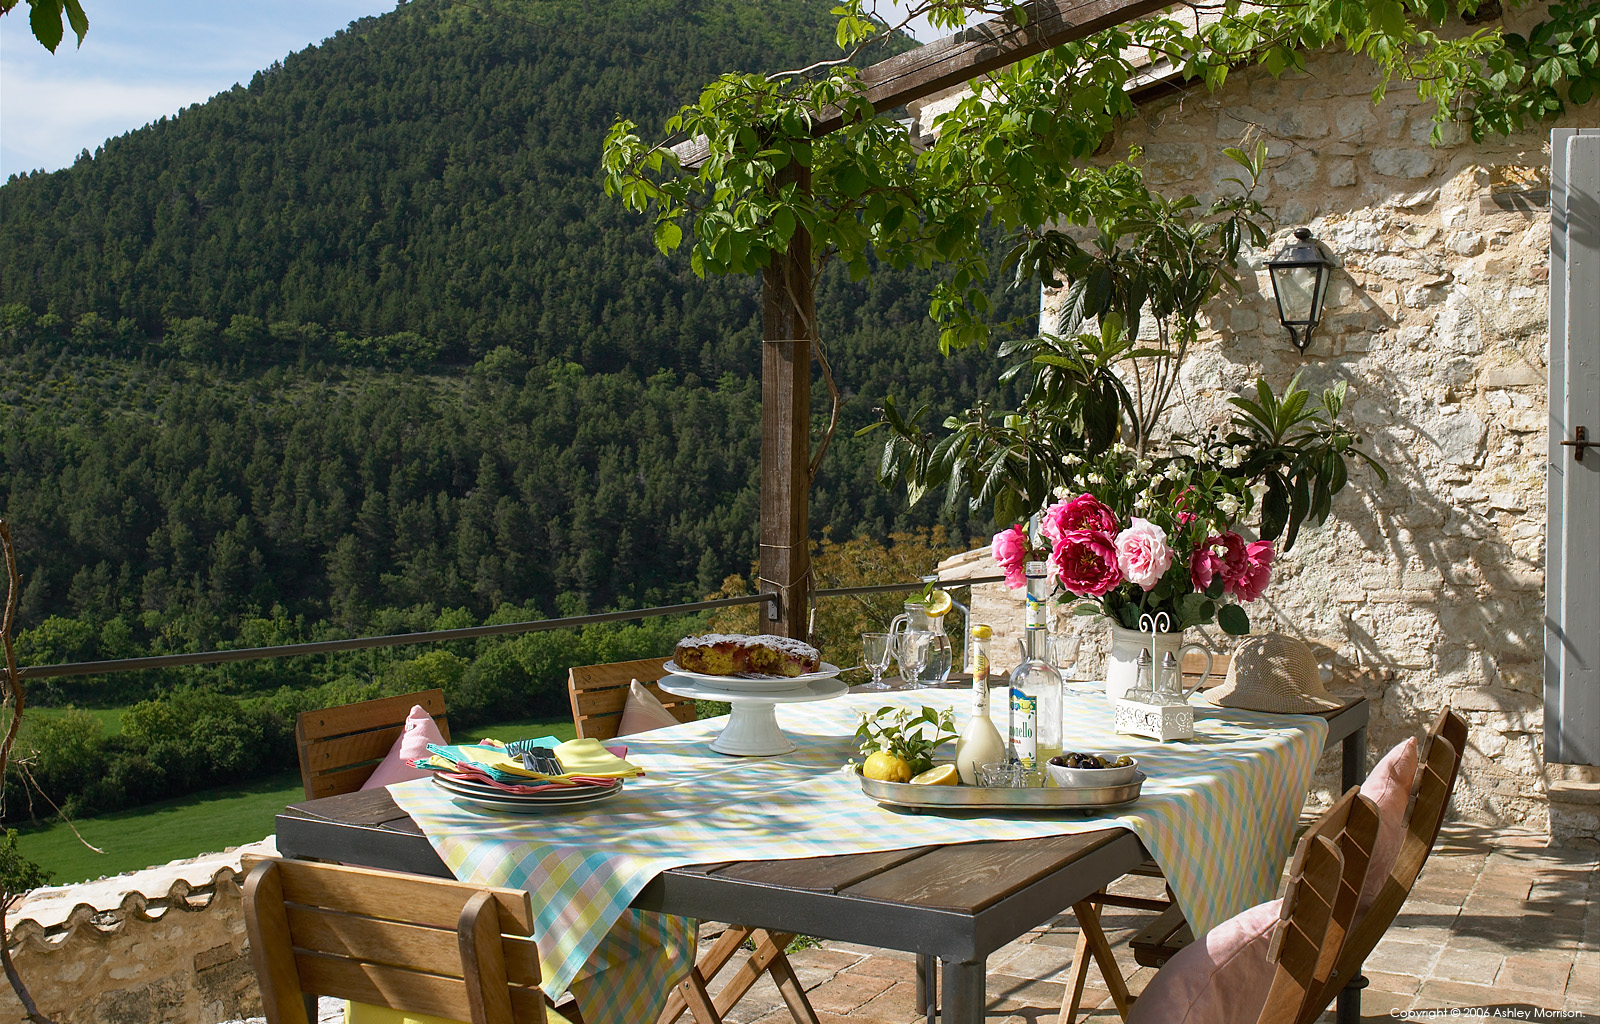 Outdoor dining at Casa della Roccia in the stone hamlet called Borgo Pianciano near Spoleto.